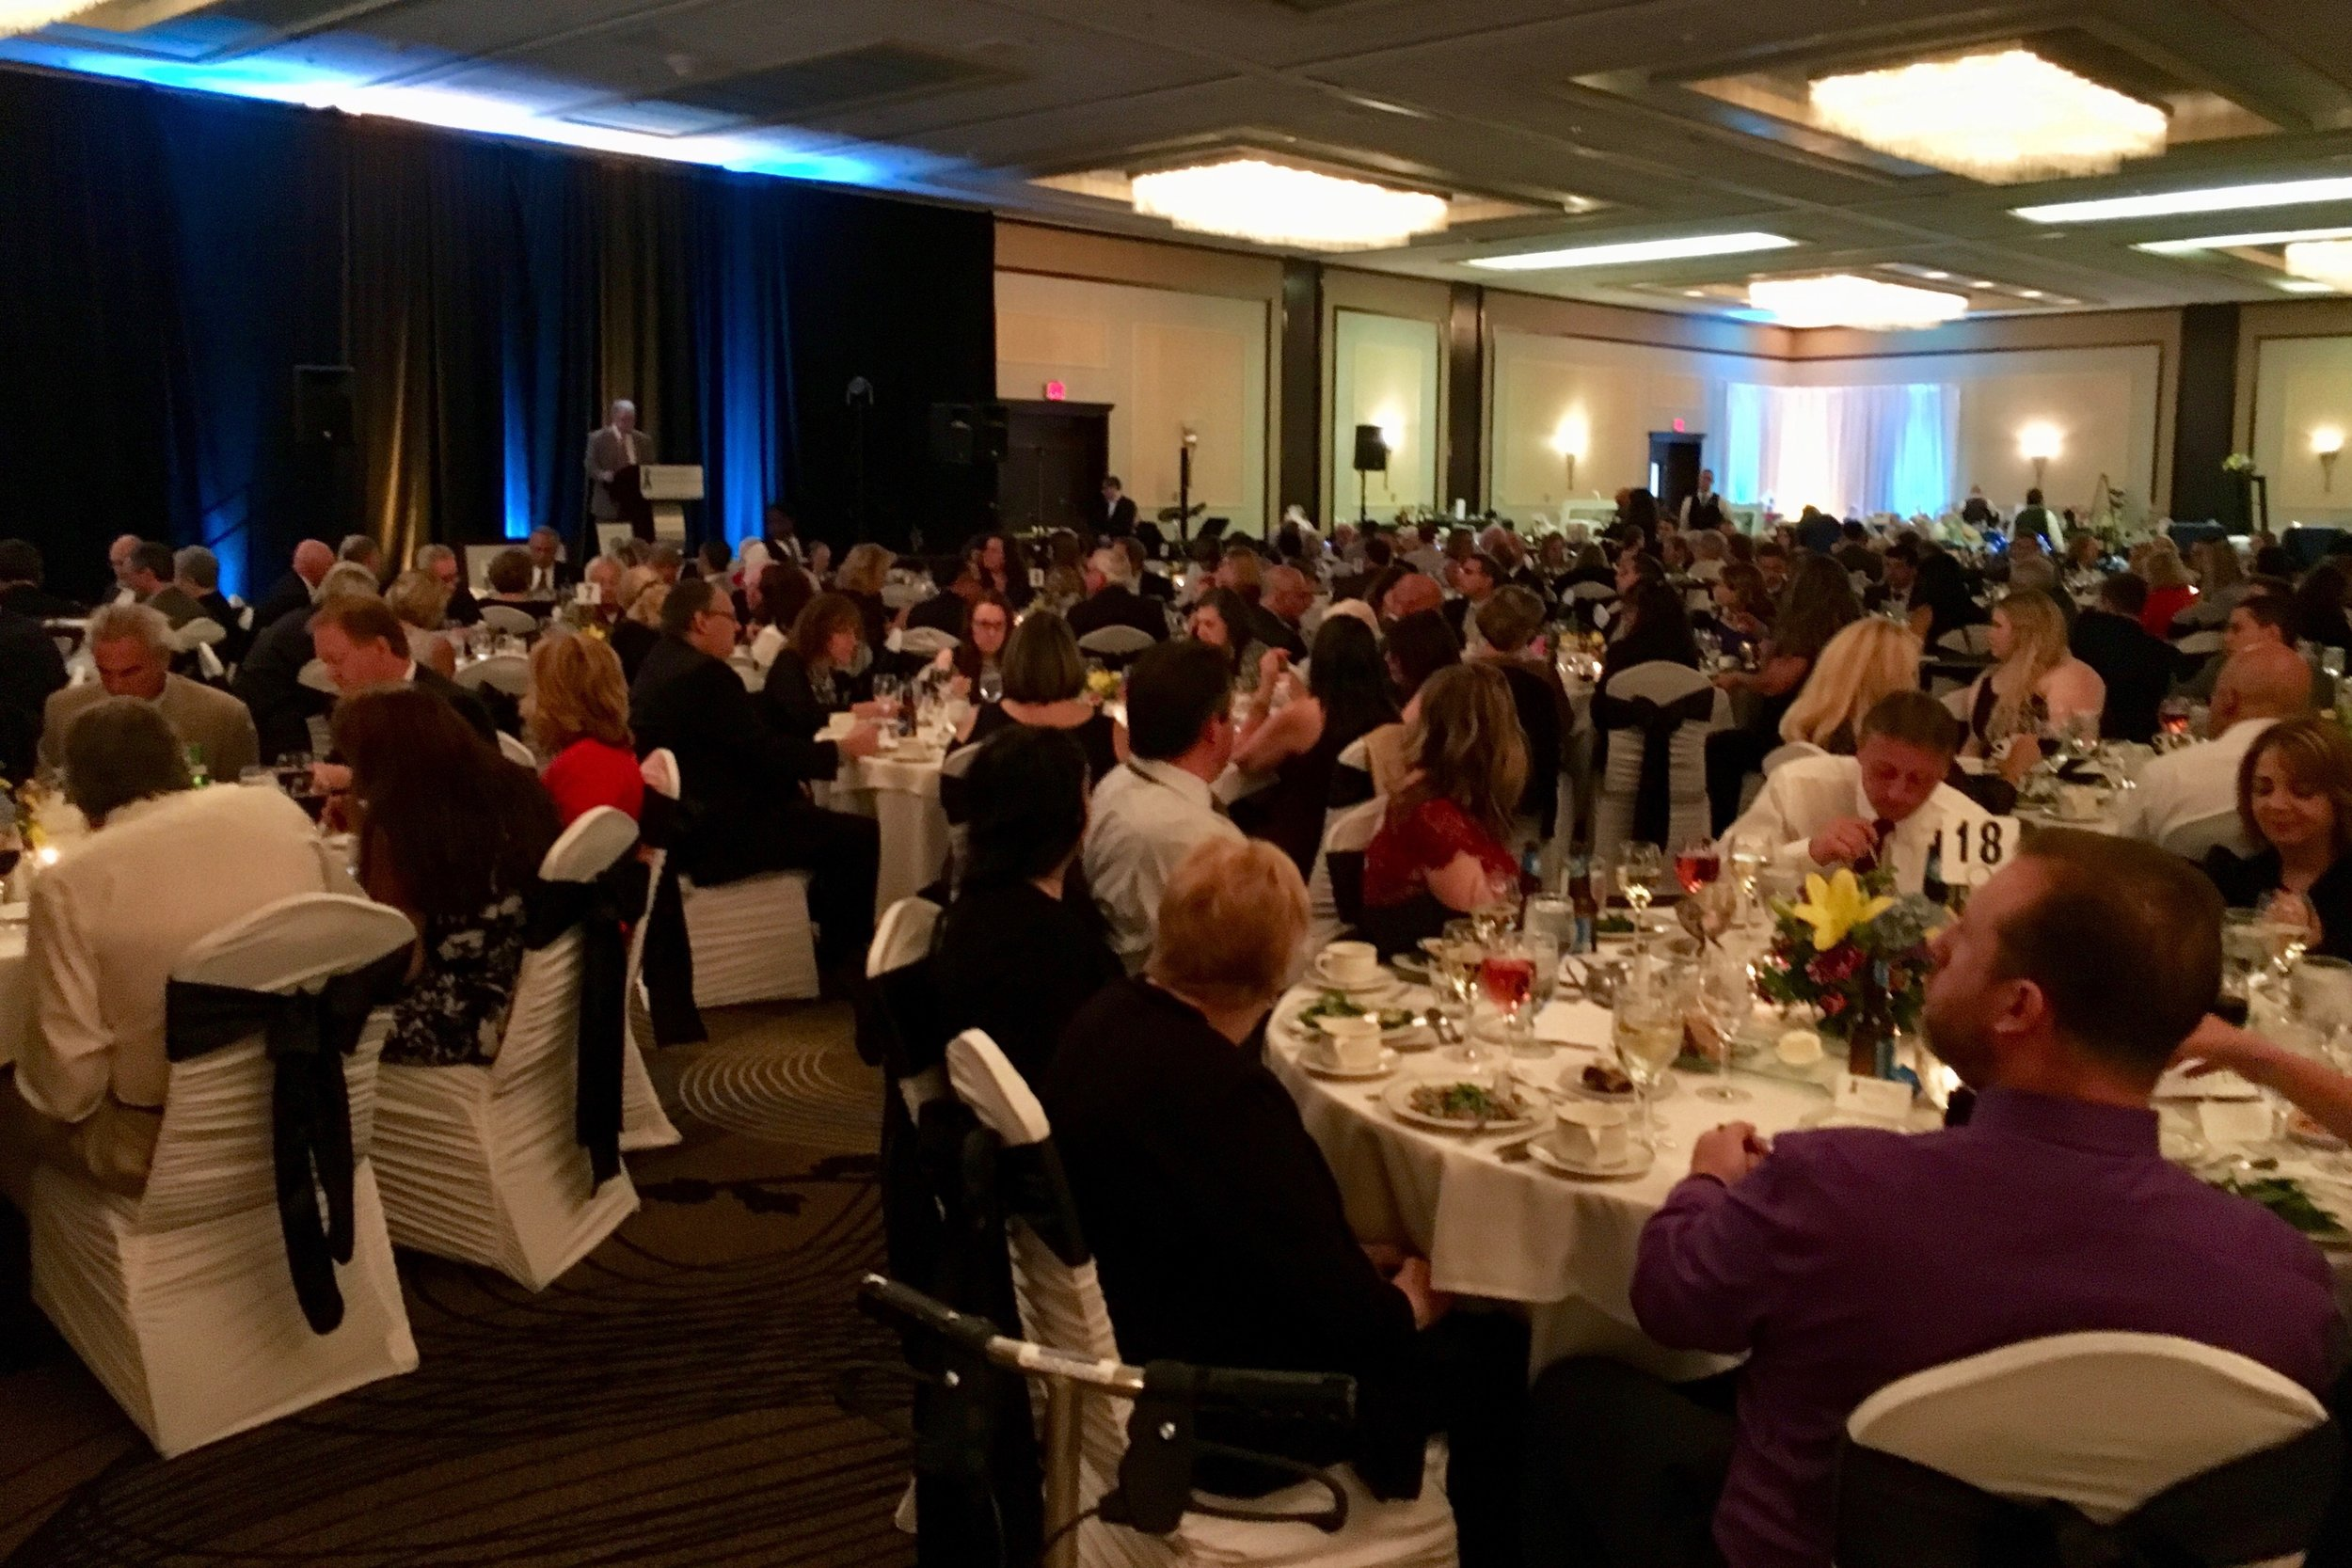 The  Hyatt Regency Buffalo Hotel and Conference Center provided a wonderful setting for great turnout of the 15th Annual Gala.